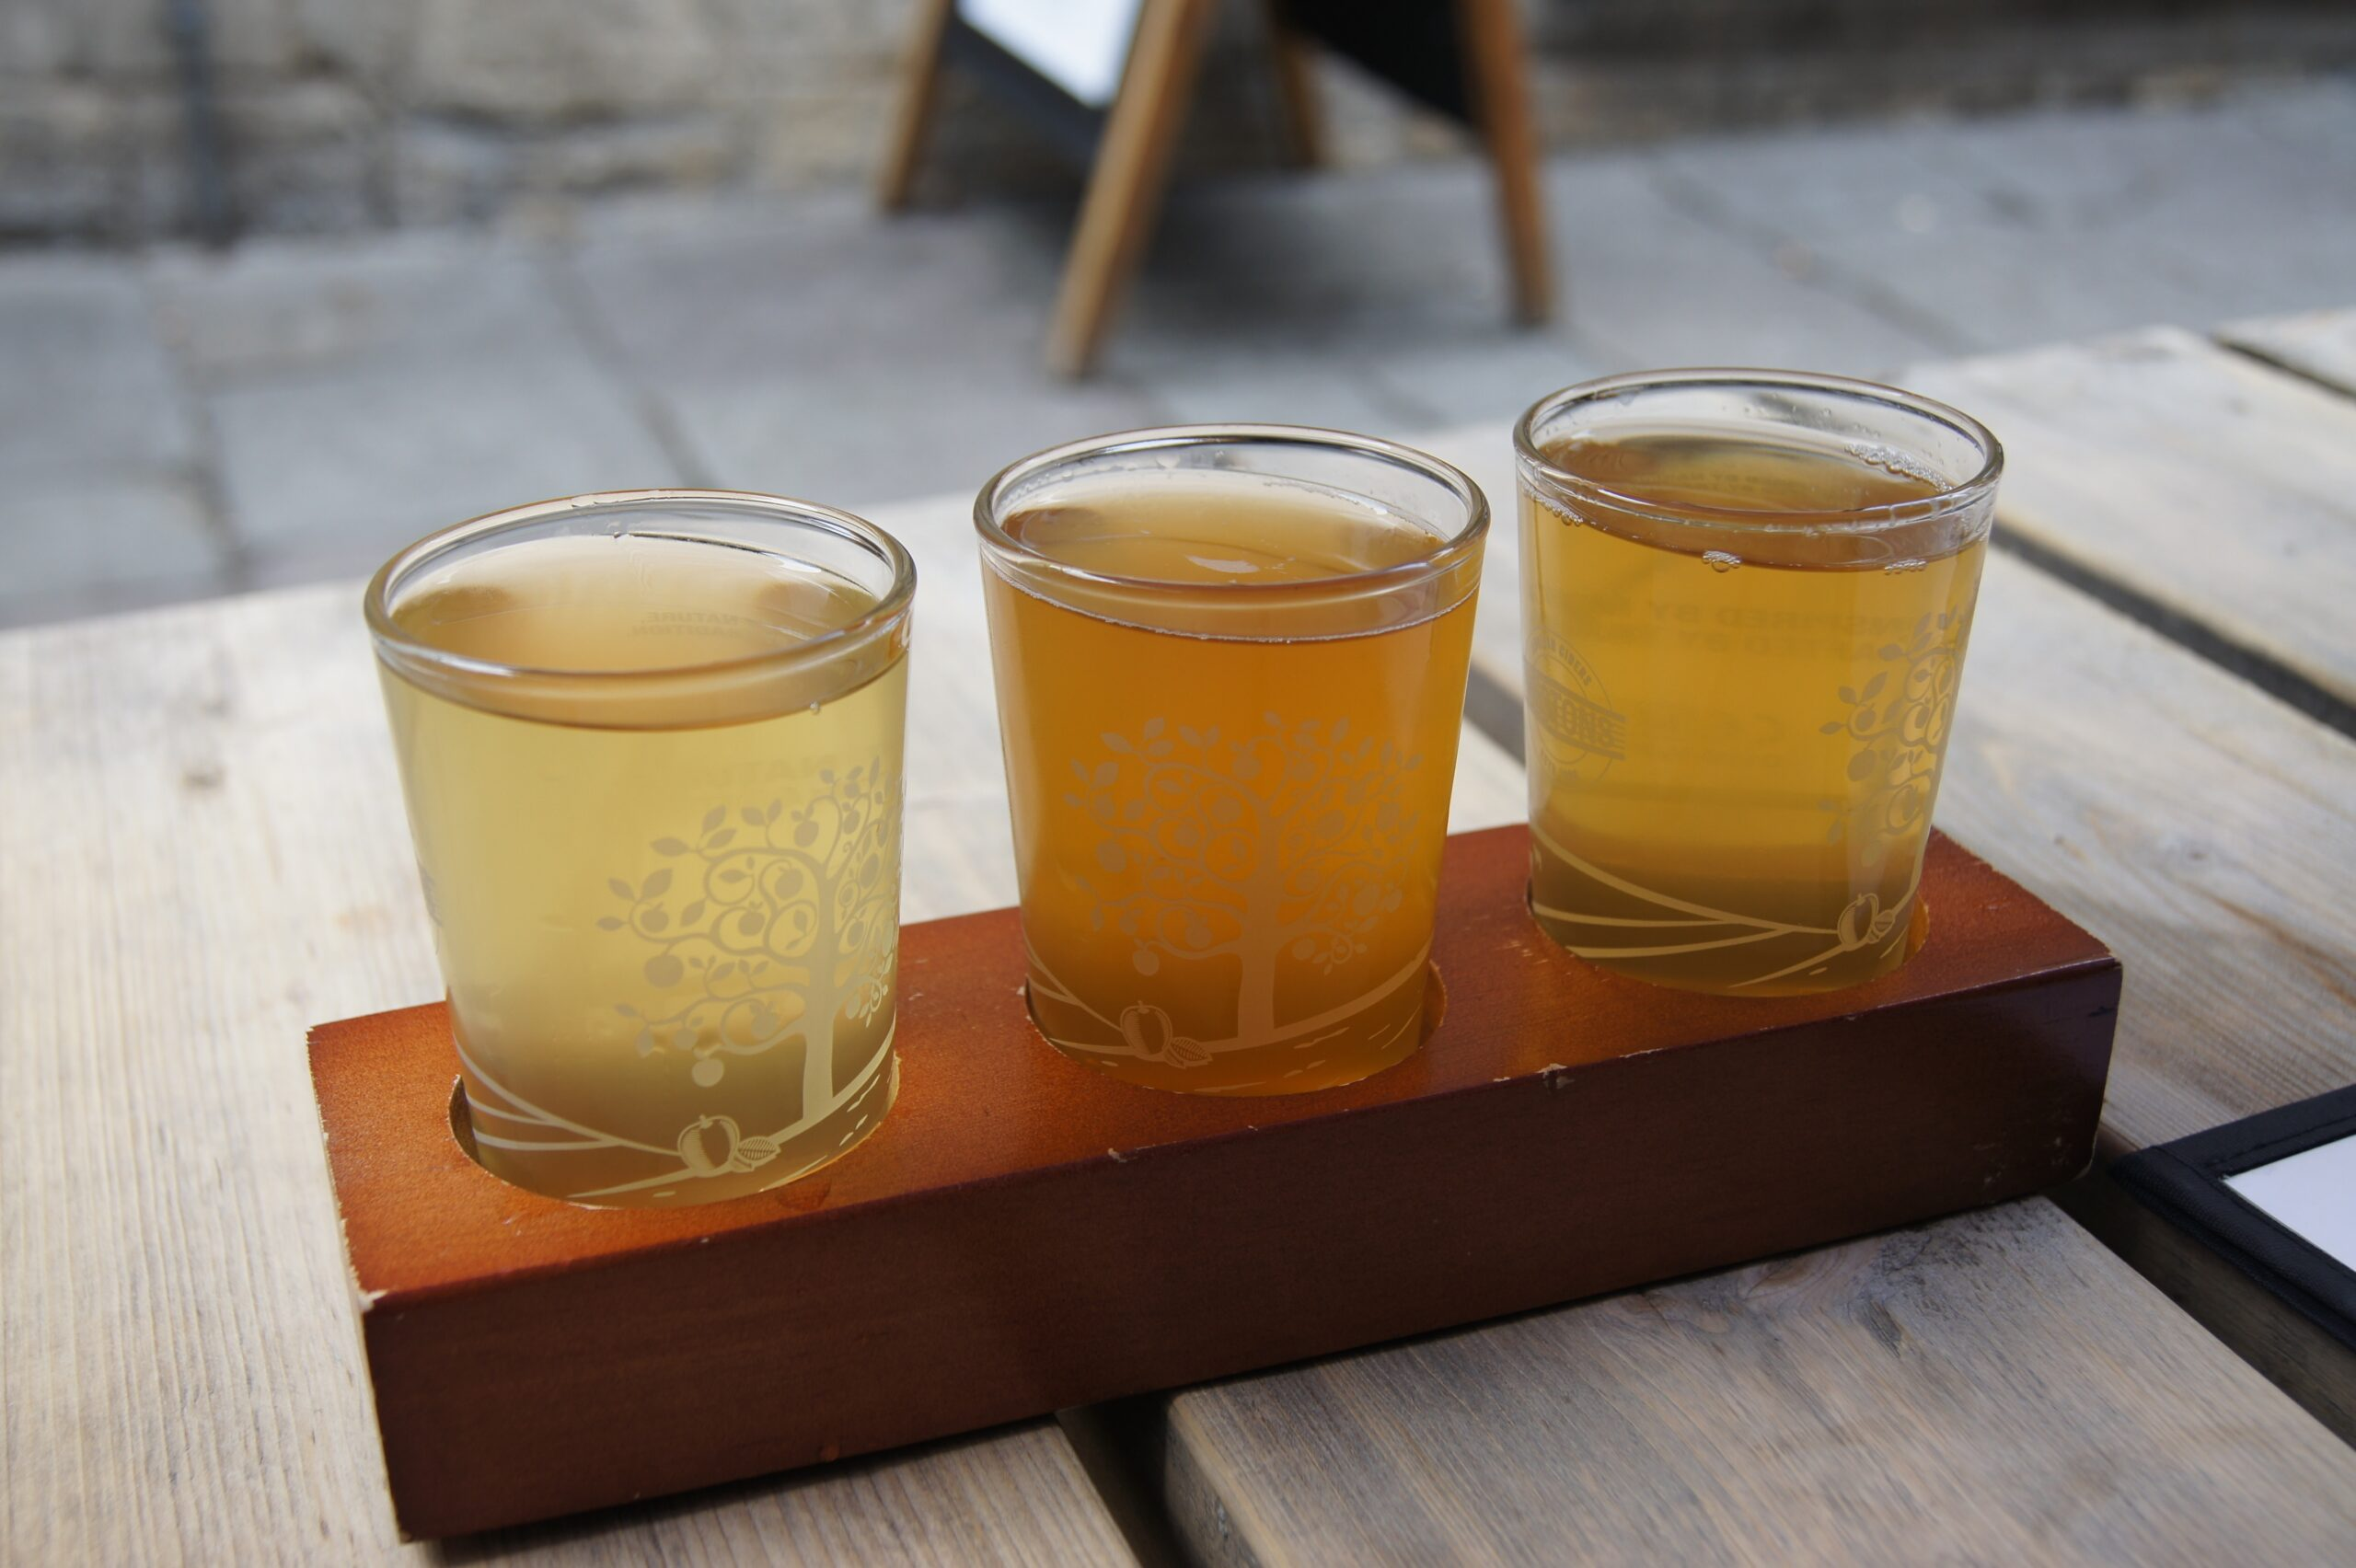 cider in glasses on a table